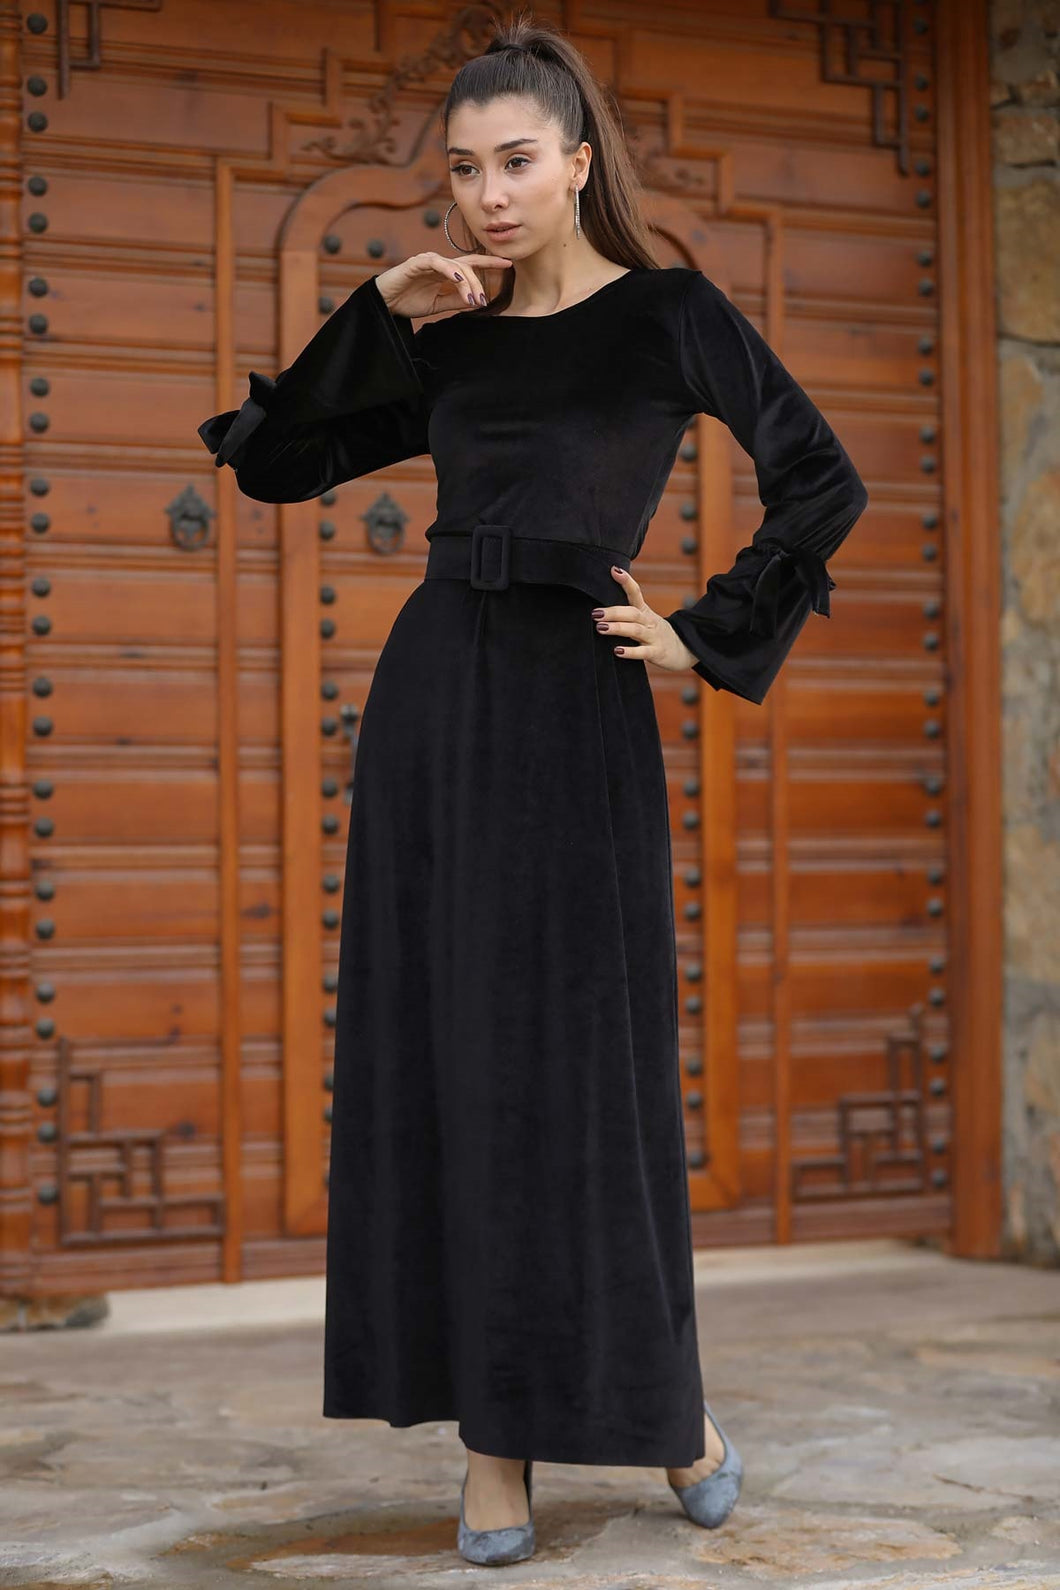 Women's Belted Black Velvet Long Dress